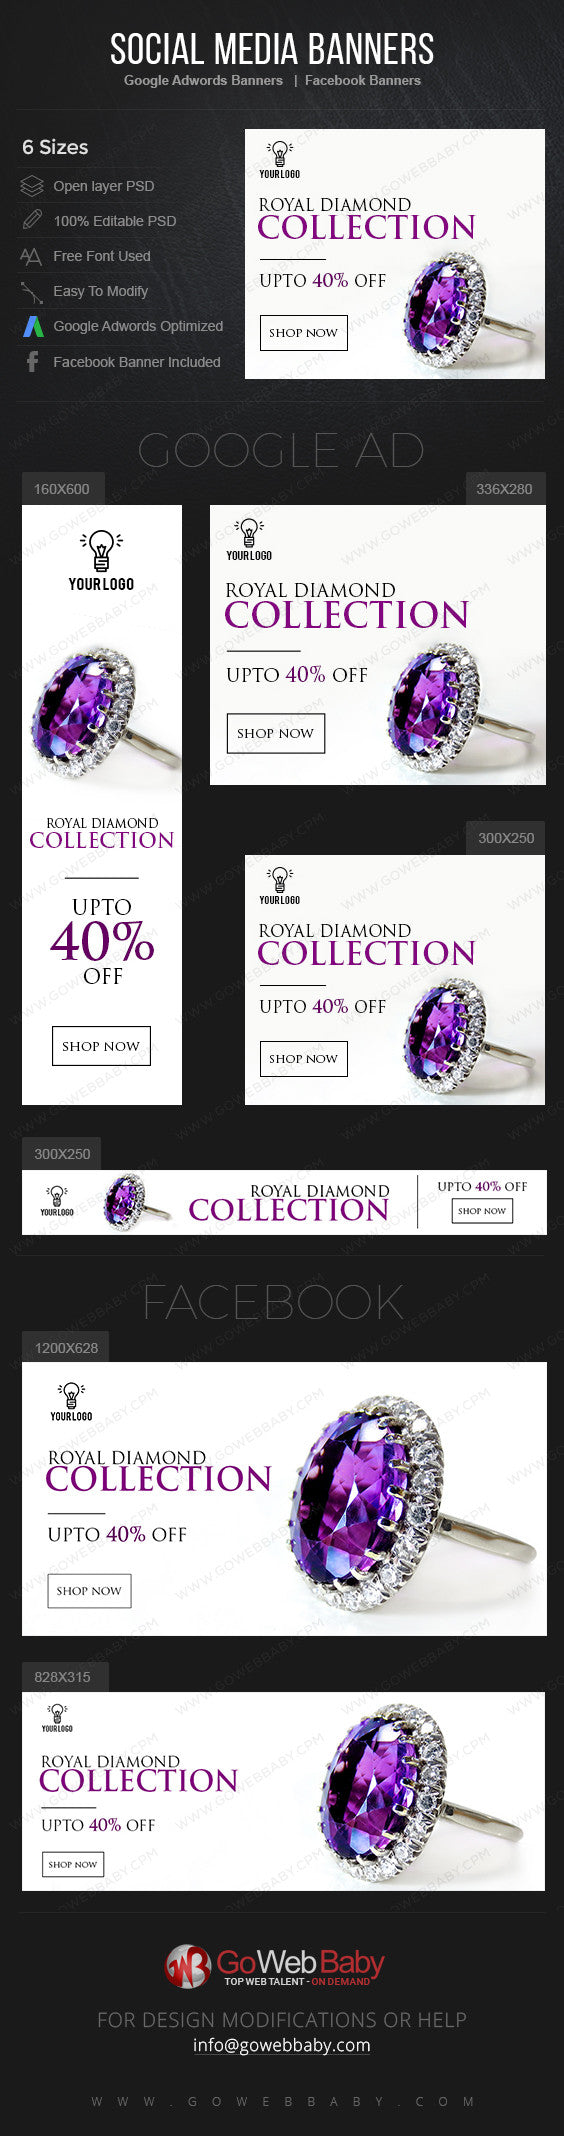 Google Adwords Display Banner with Facebook banners - Royal Diamond Store Website Marketing